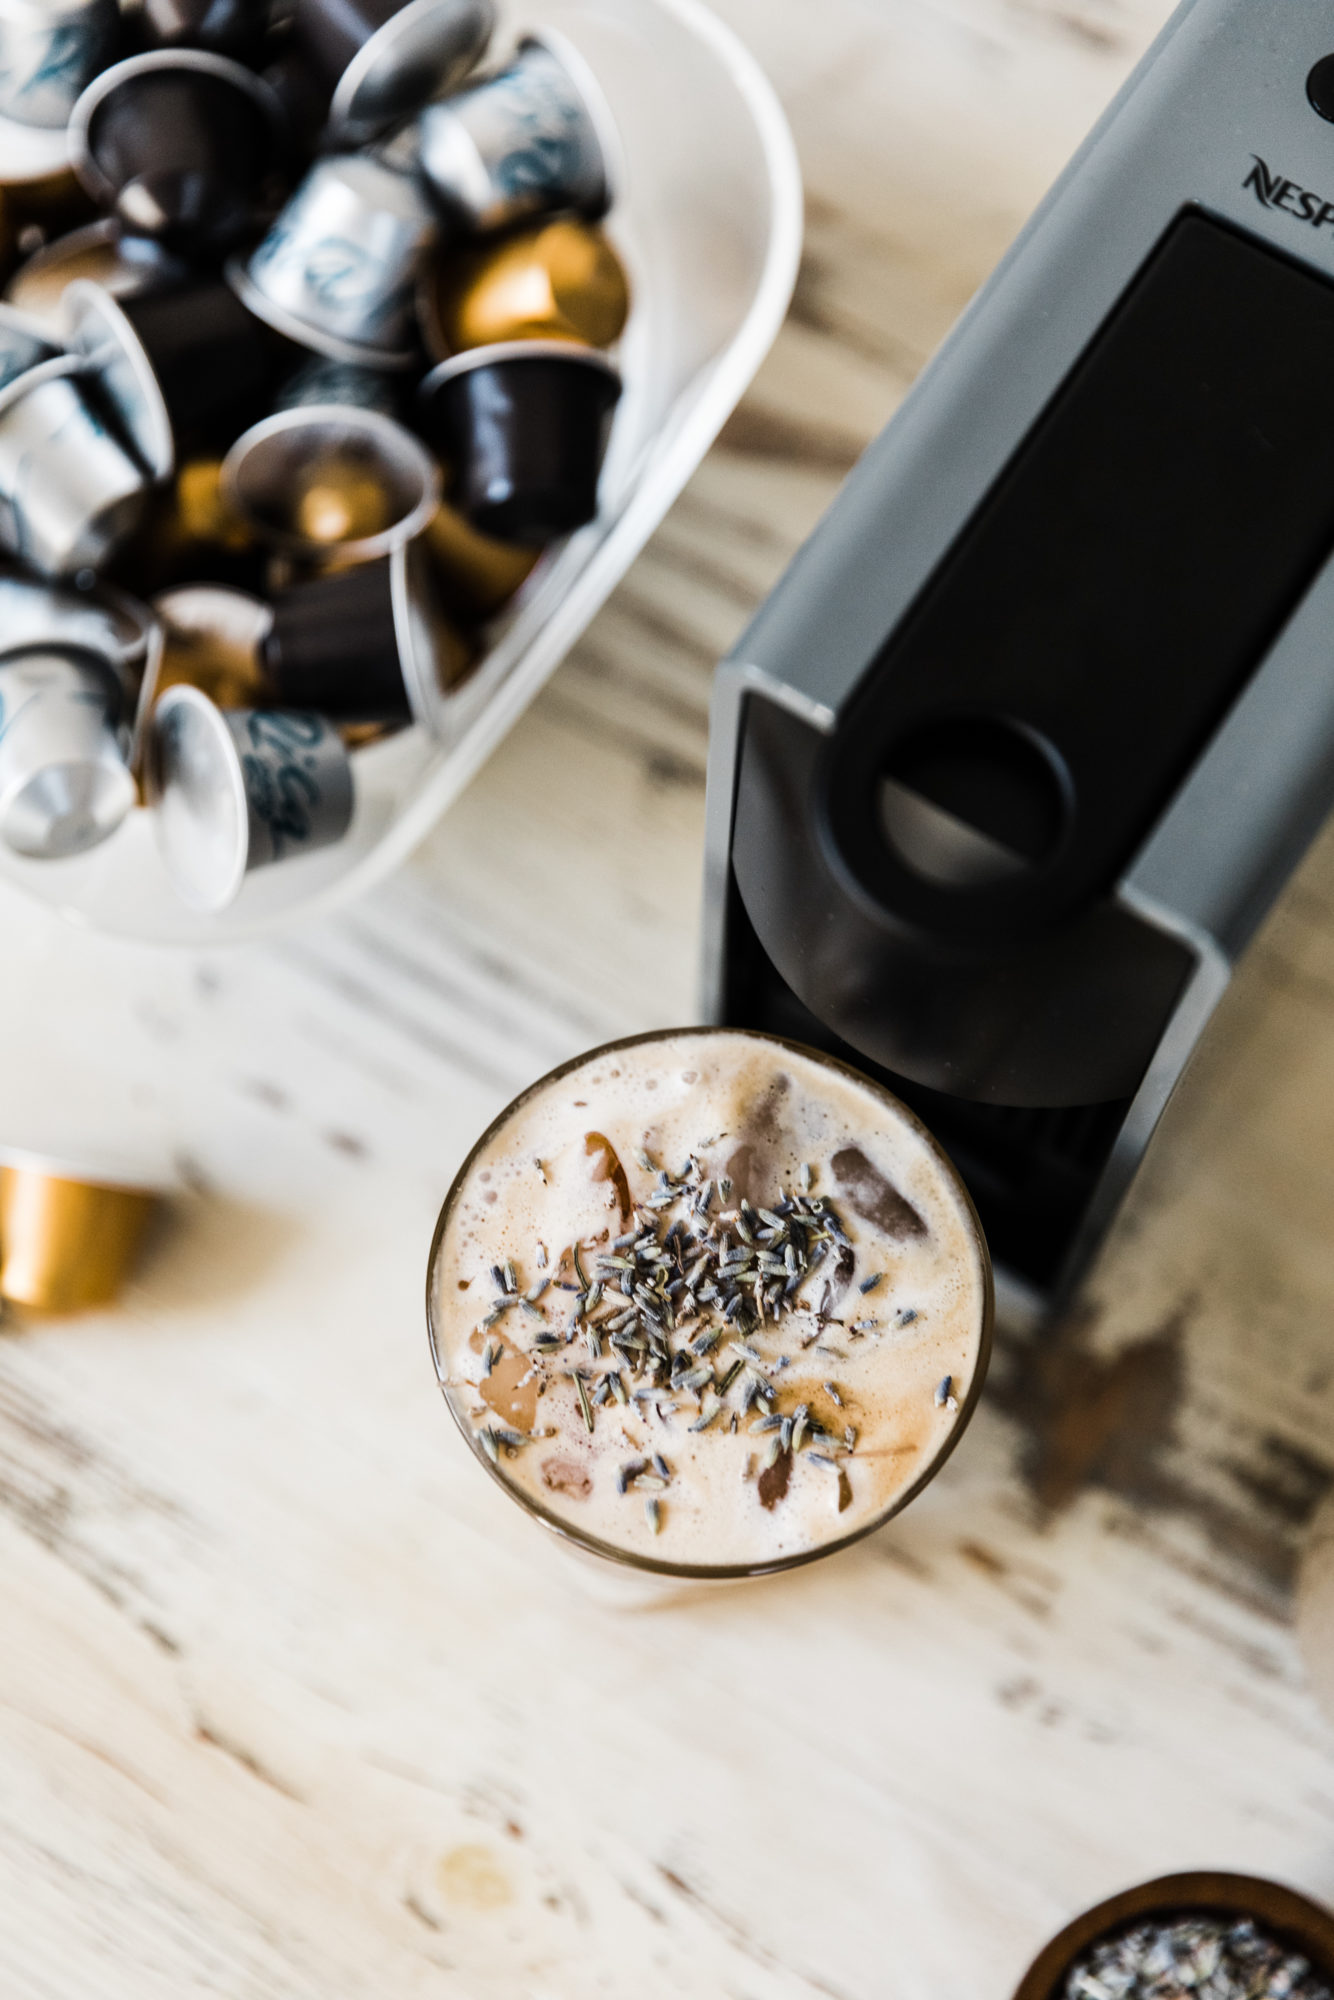 latte with nespresso machine